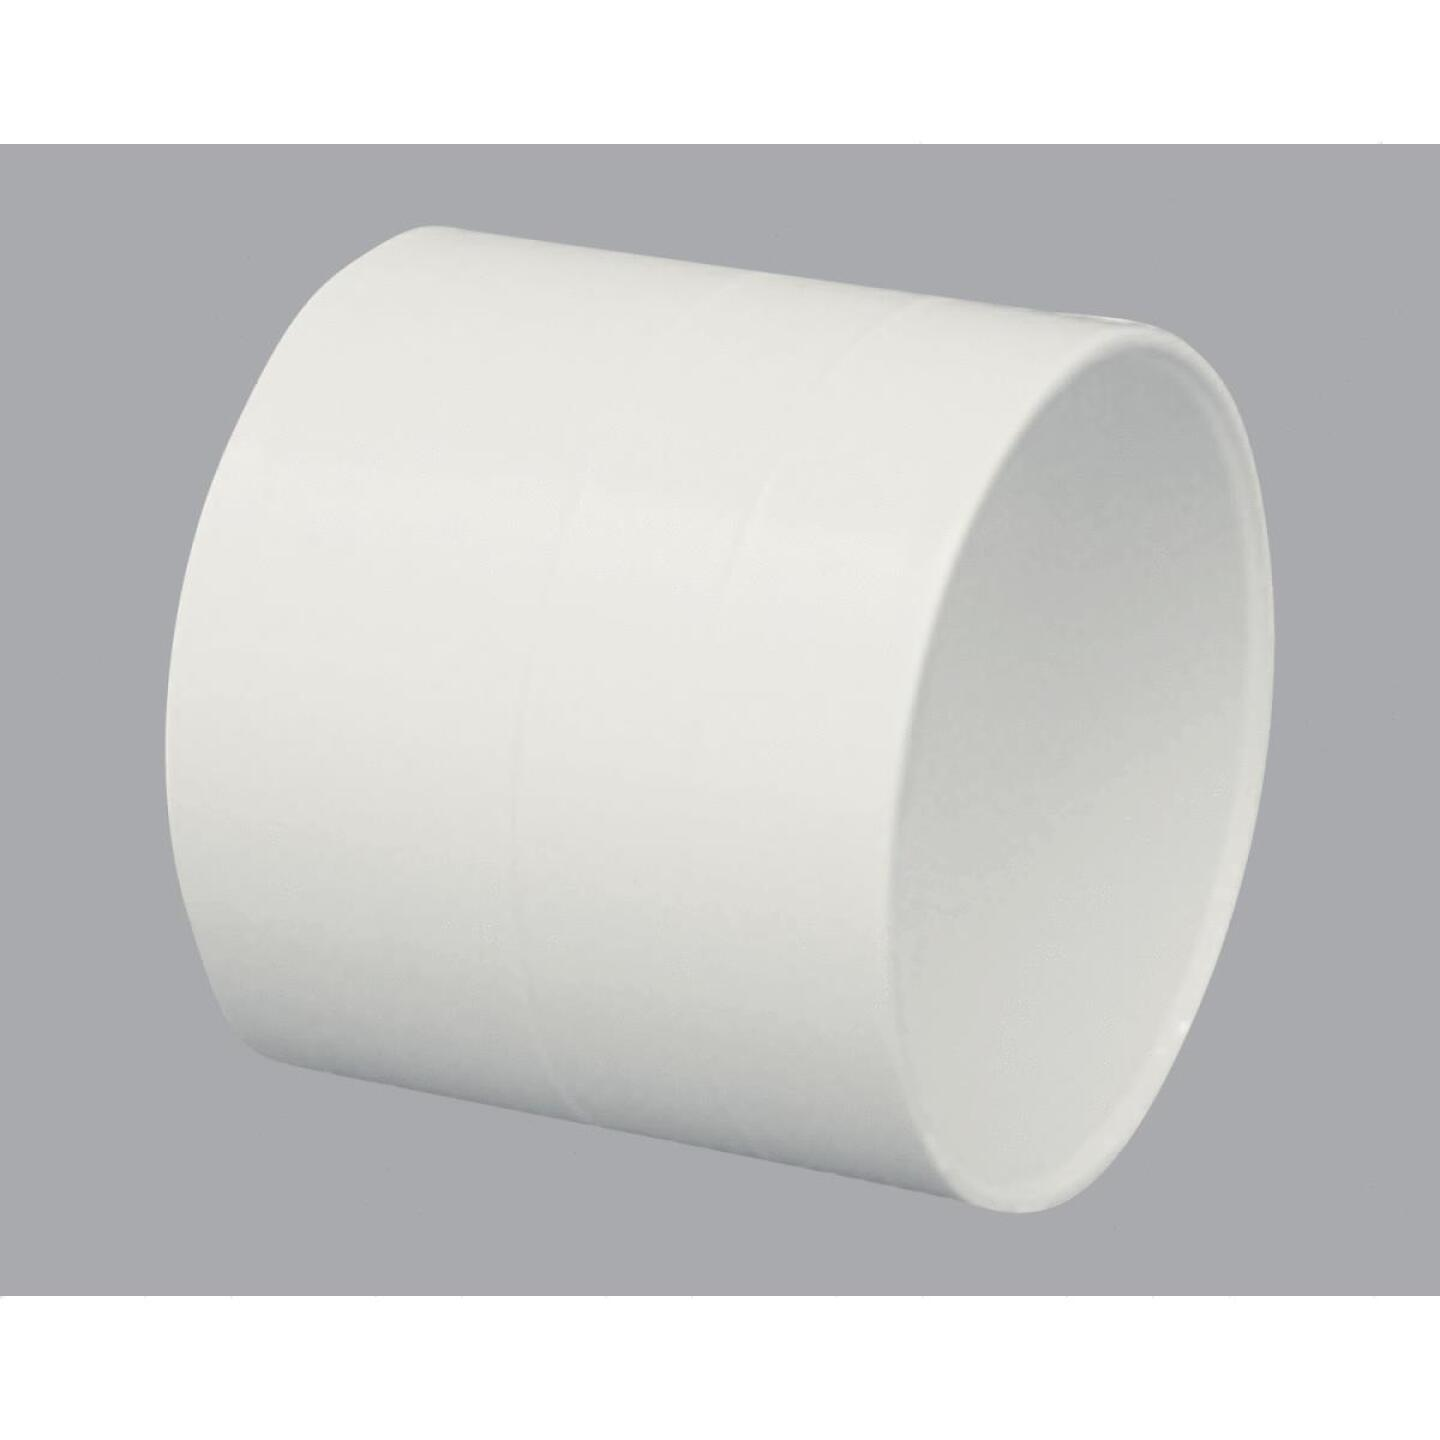 IPEX Canplas SDR 35 4 In. PVC Sewer and Drain Coupling Image 1